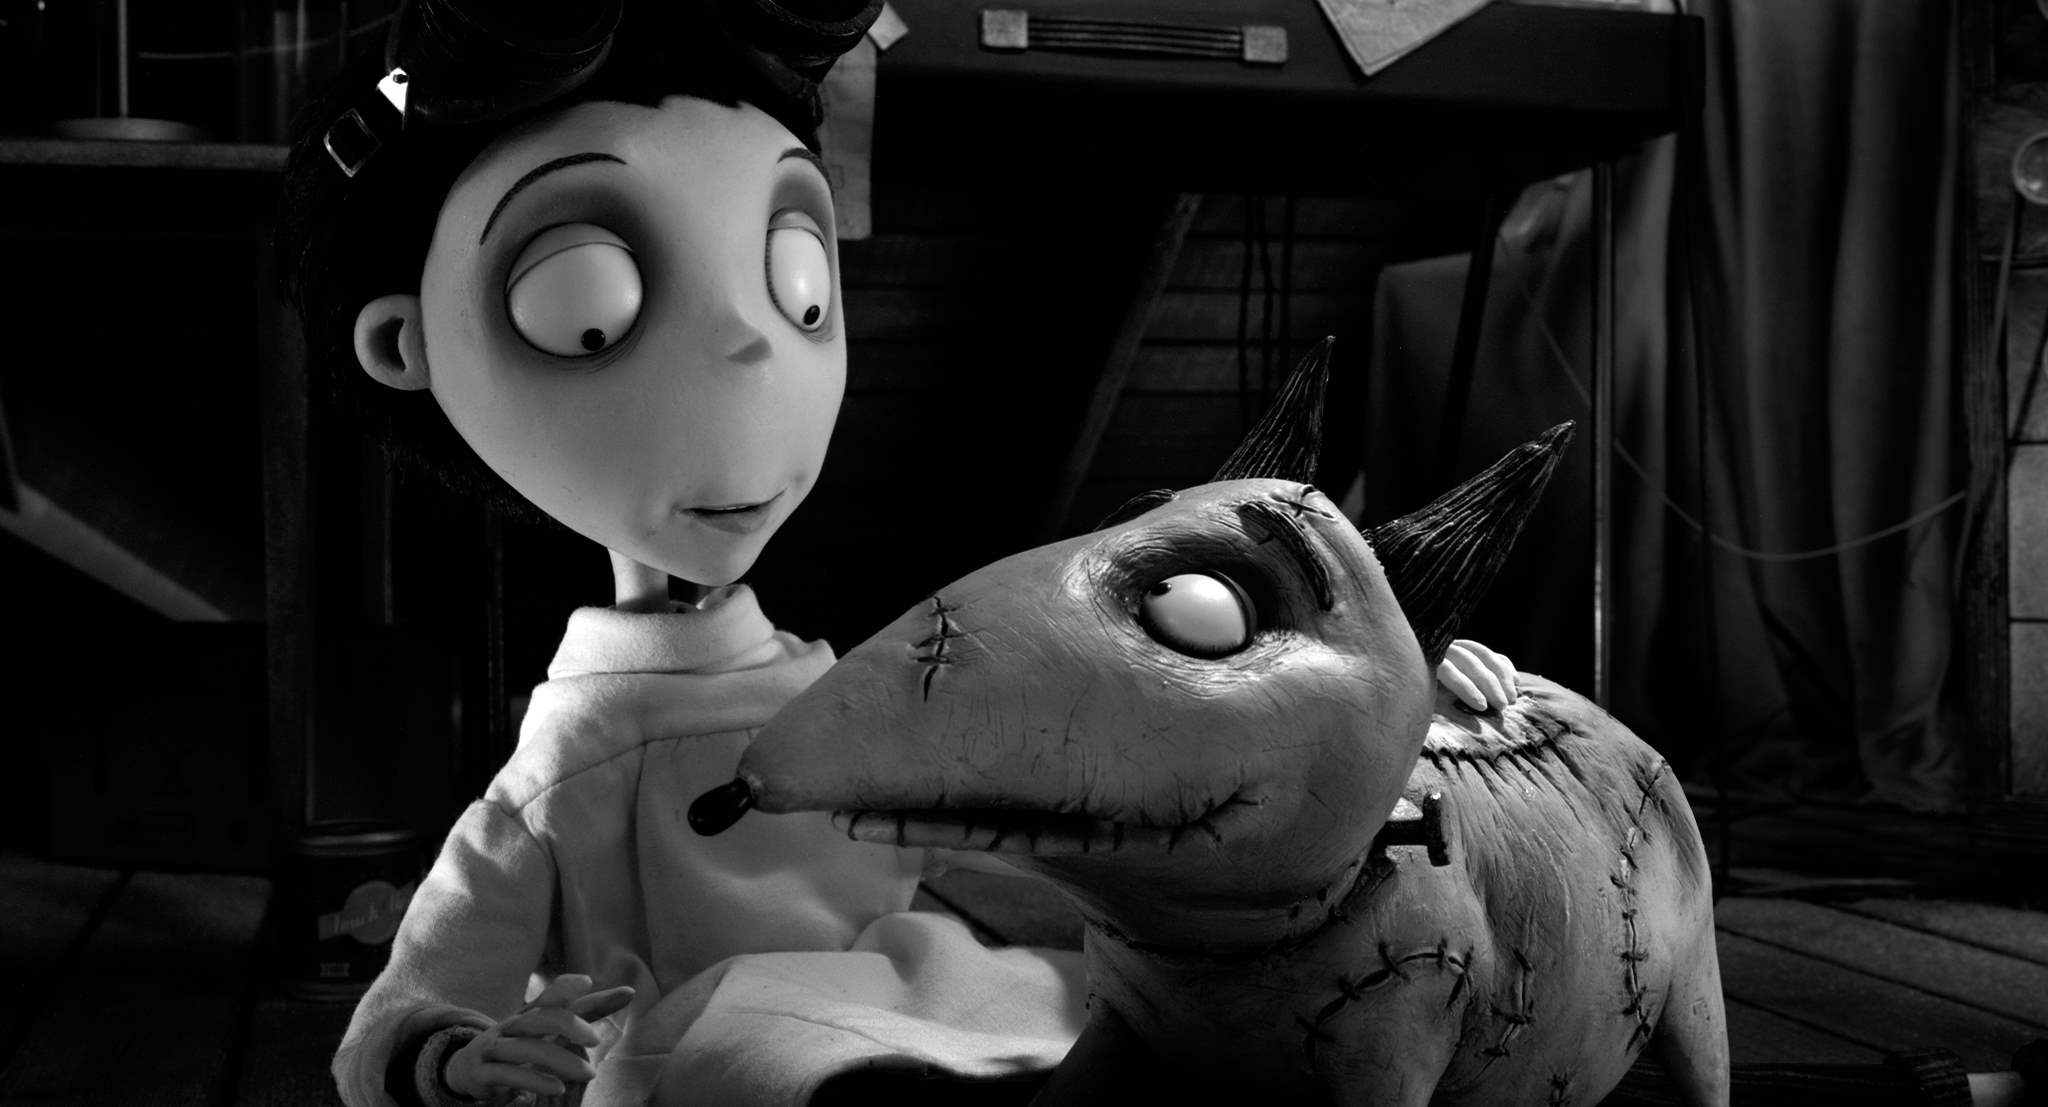 Victor and Sparky in Frankenweenie